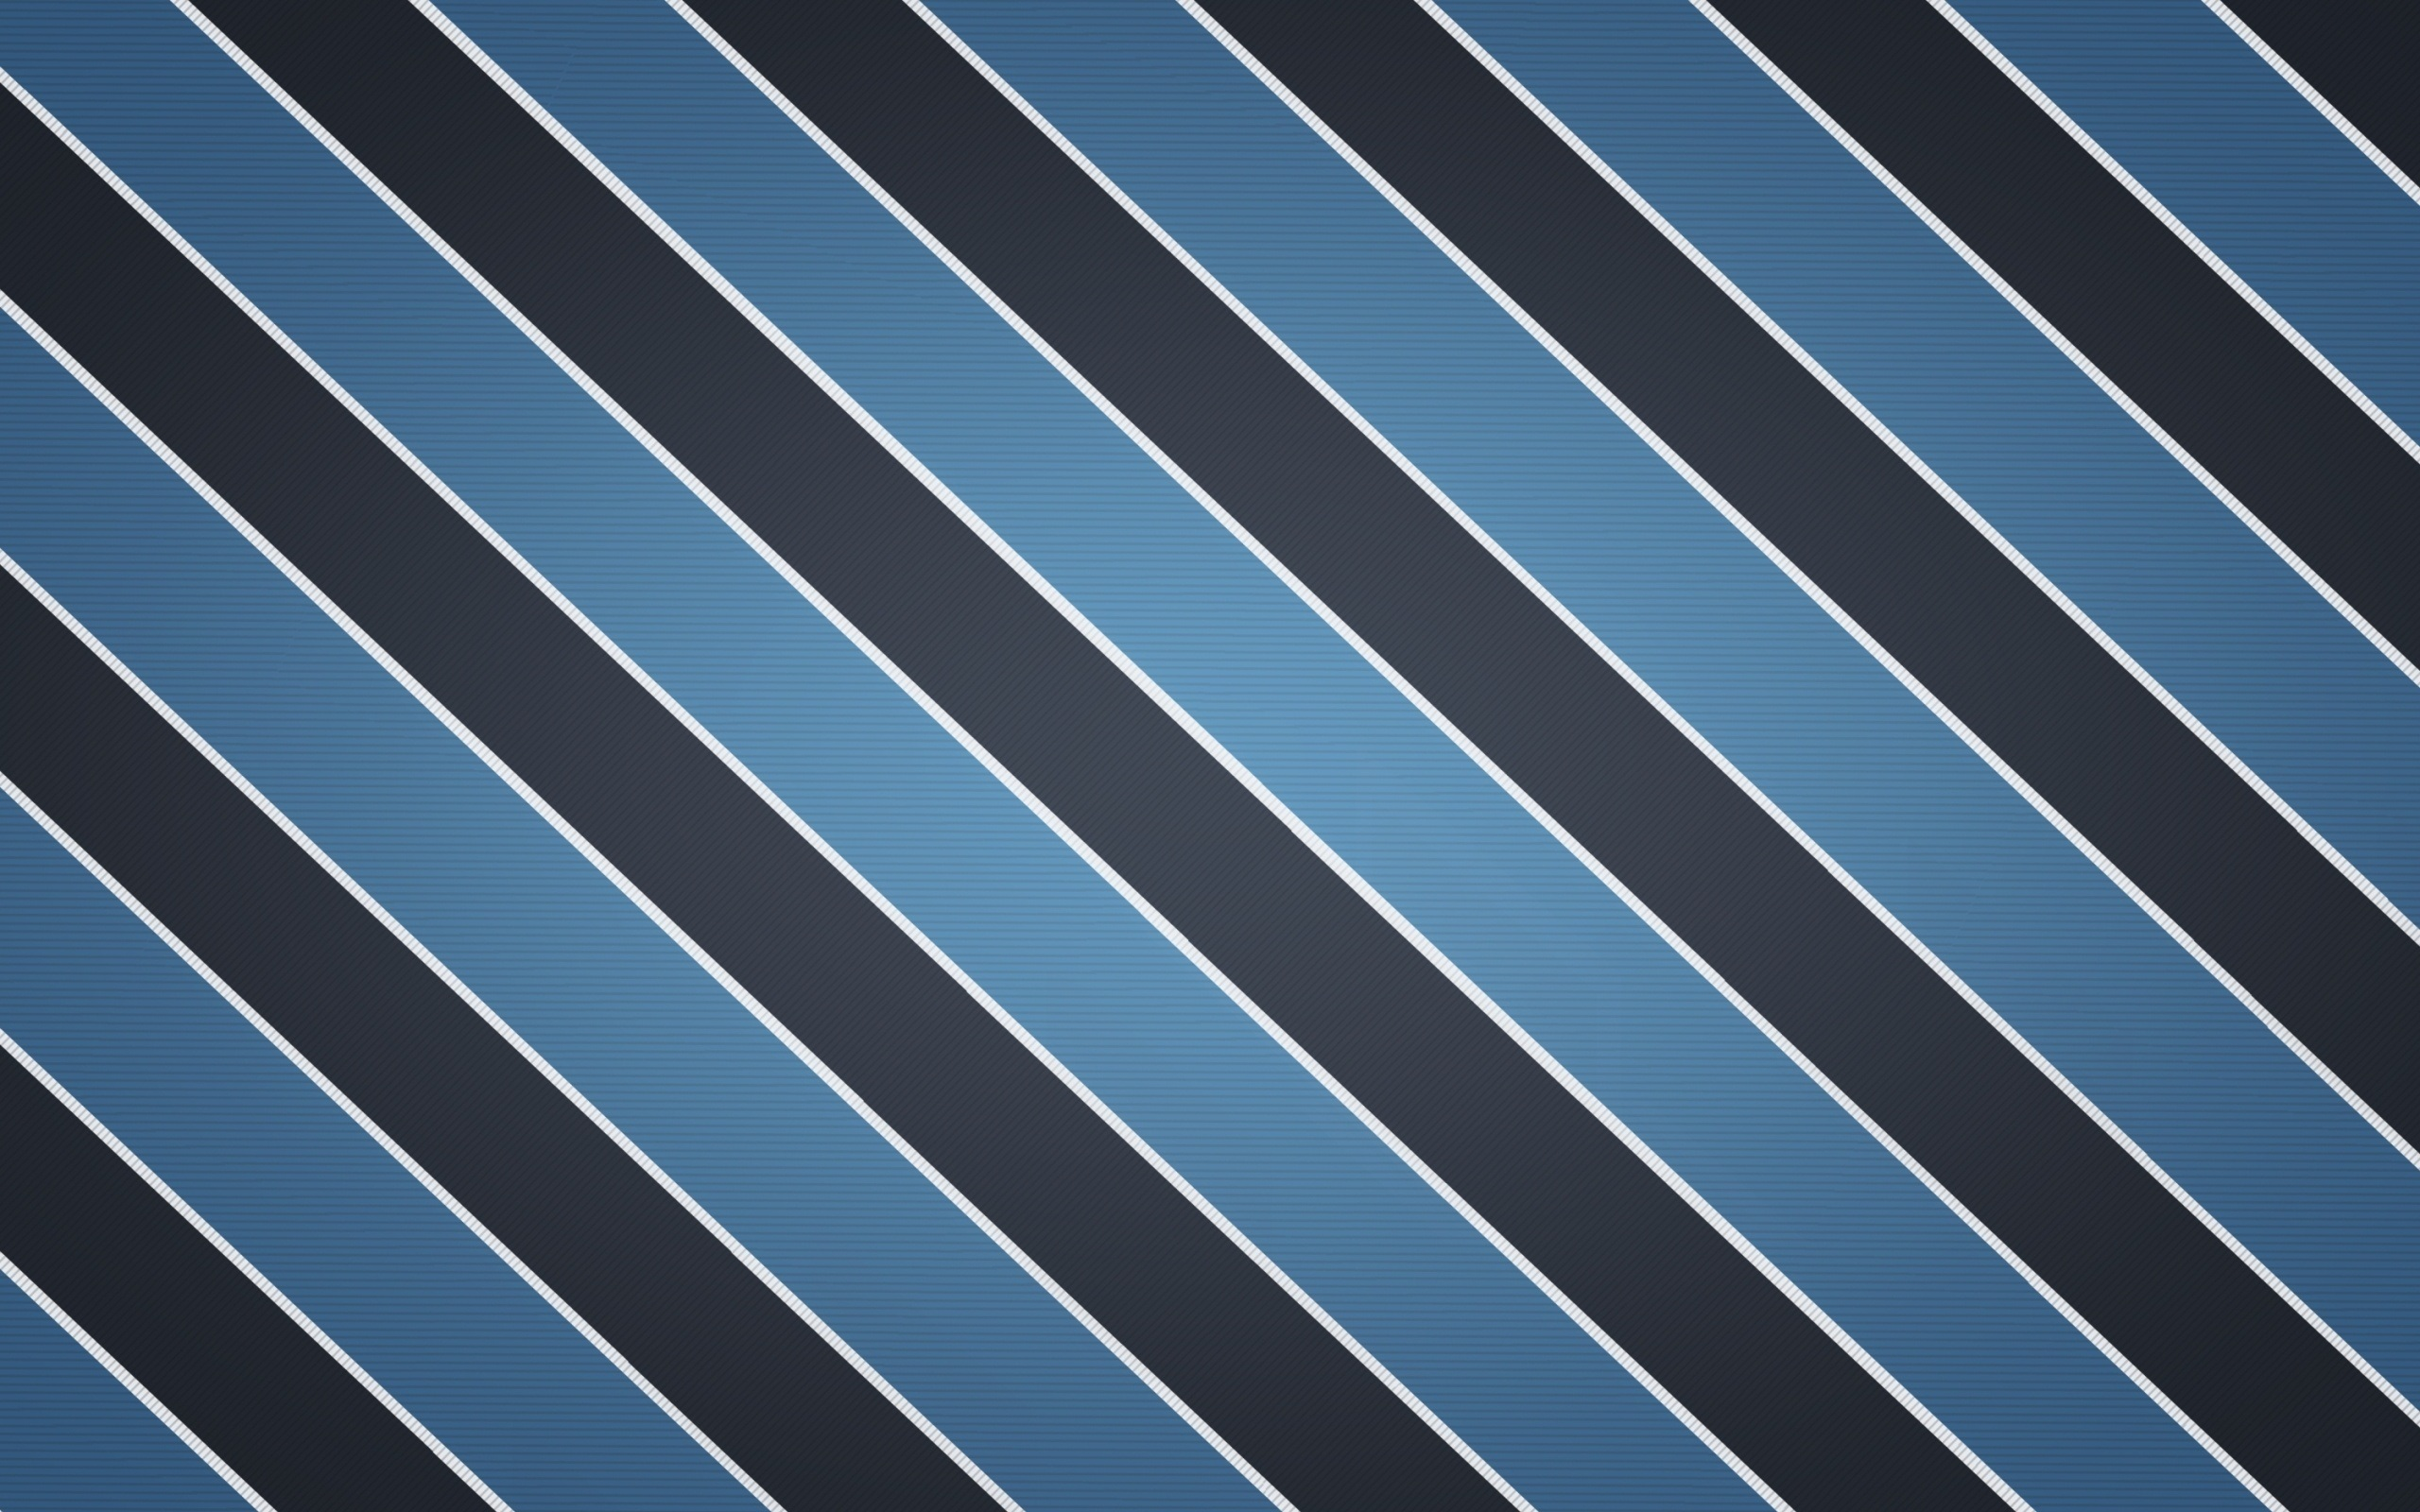 Blue Striped Wallpaper: Download Black And Blue Striped Wallpaper Gallery